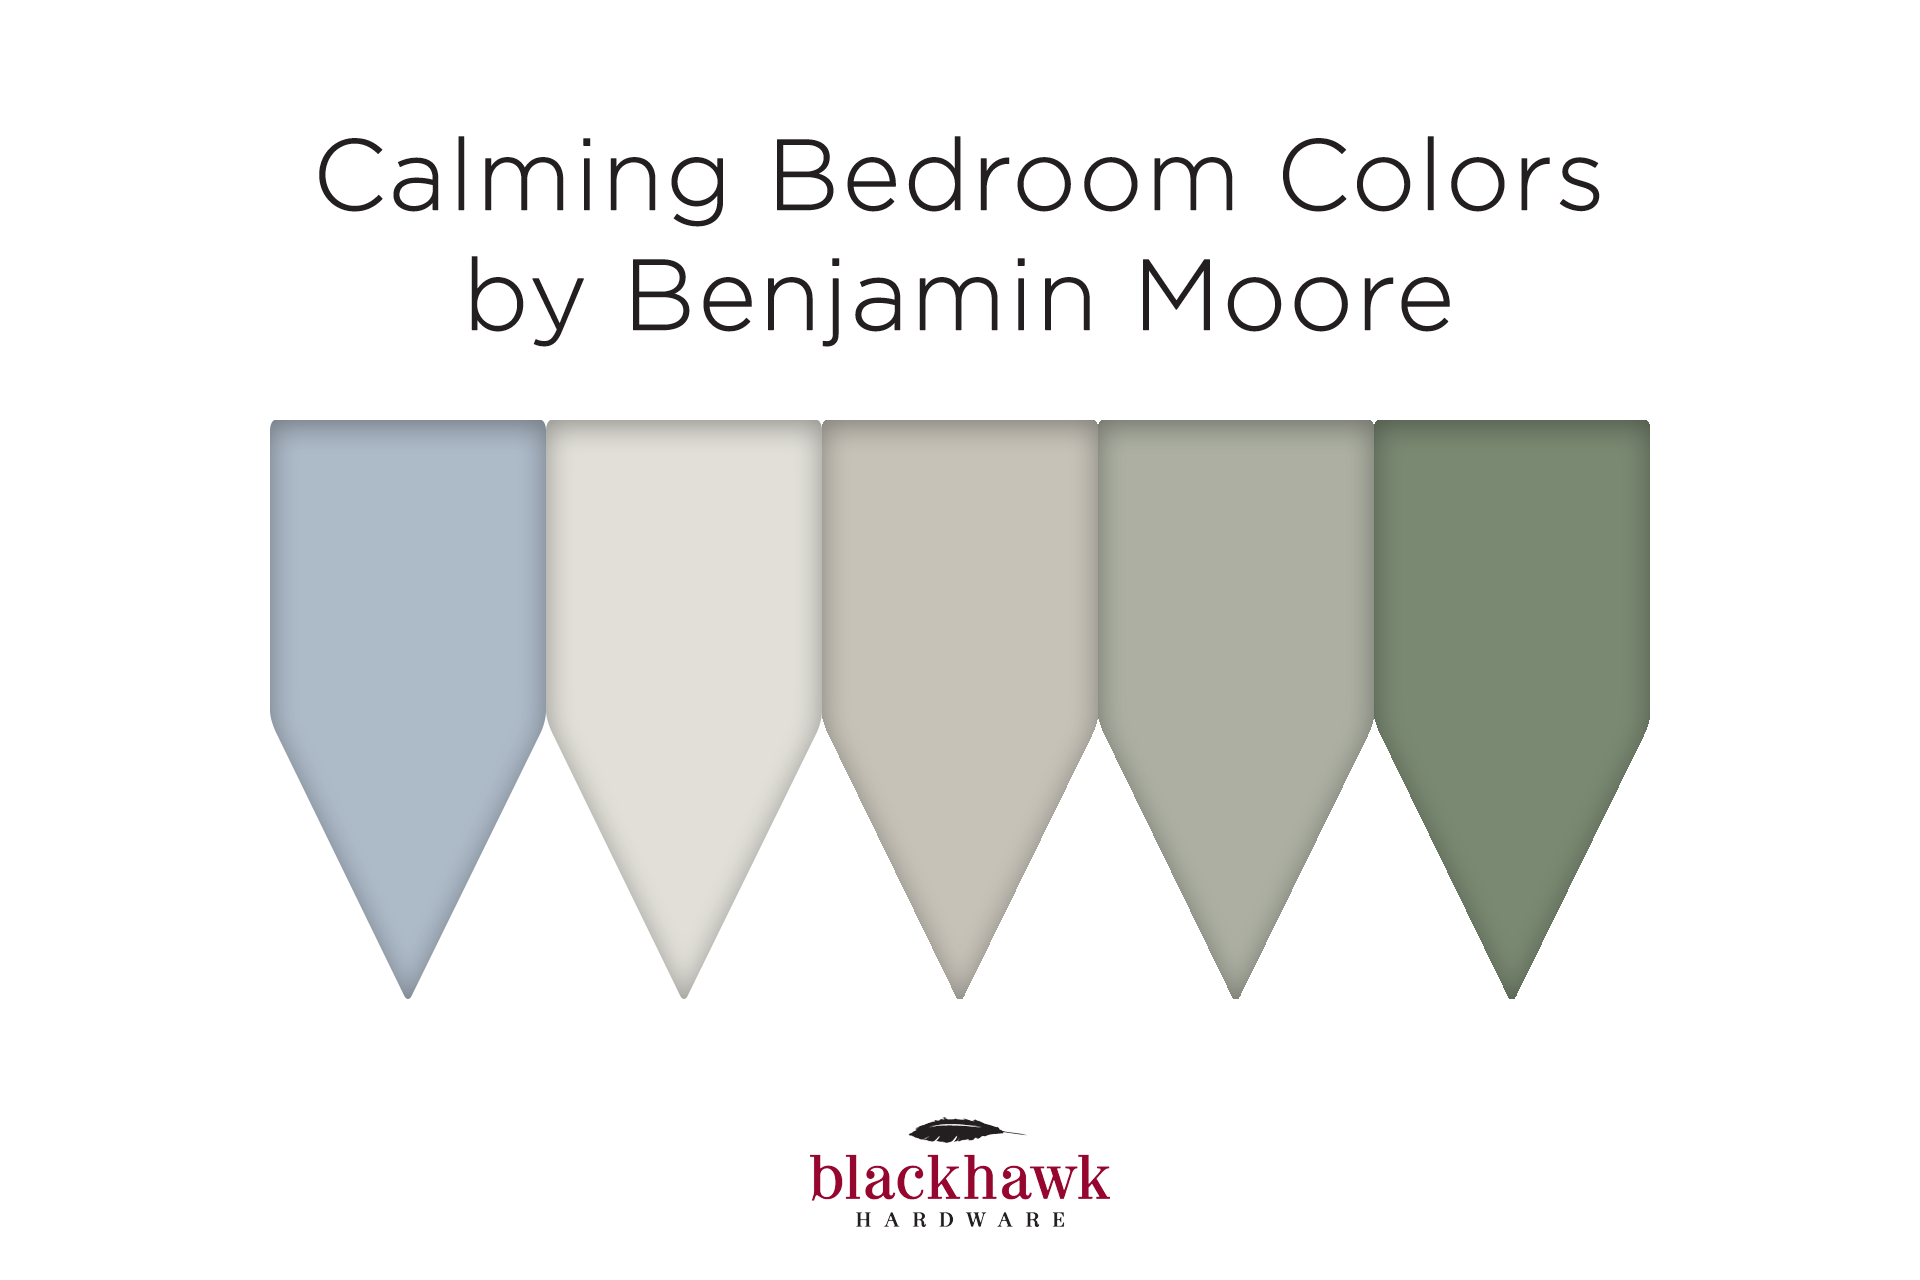 Delightful View Larger Image Calming Bedroom Paint Colors By Benjamin Moore    Available At Blackhawk Hardware